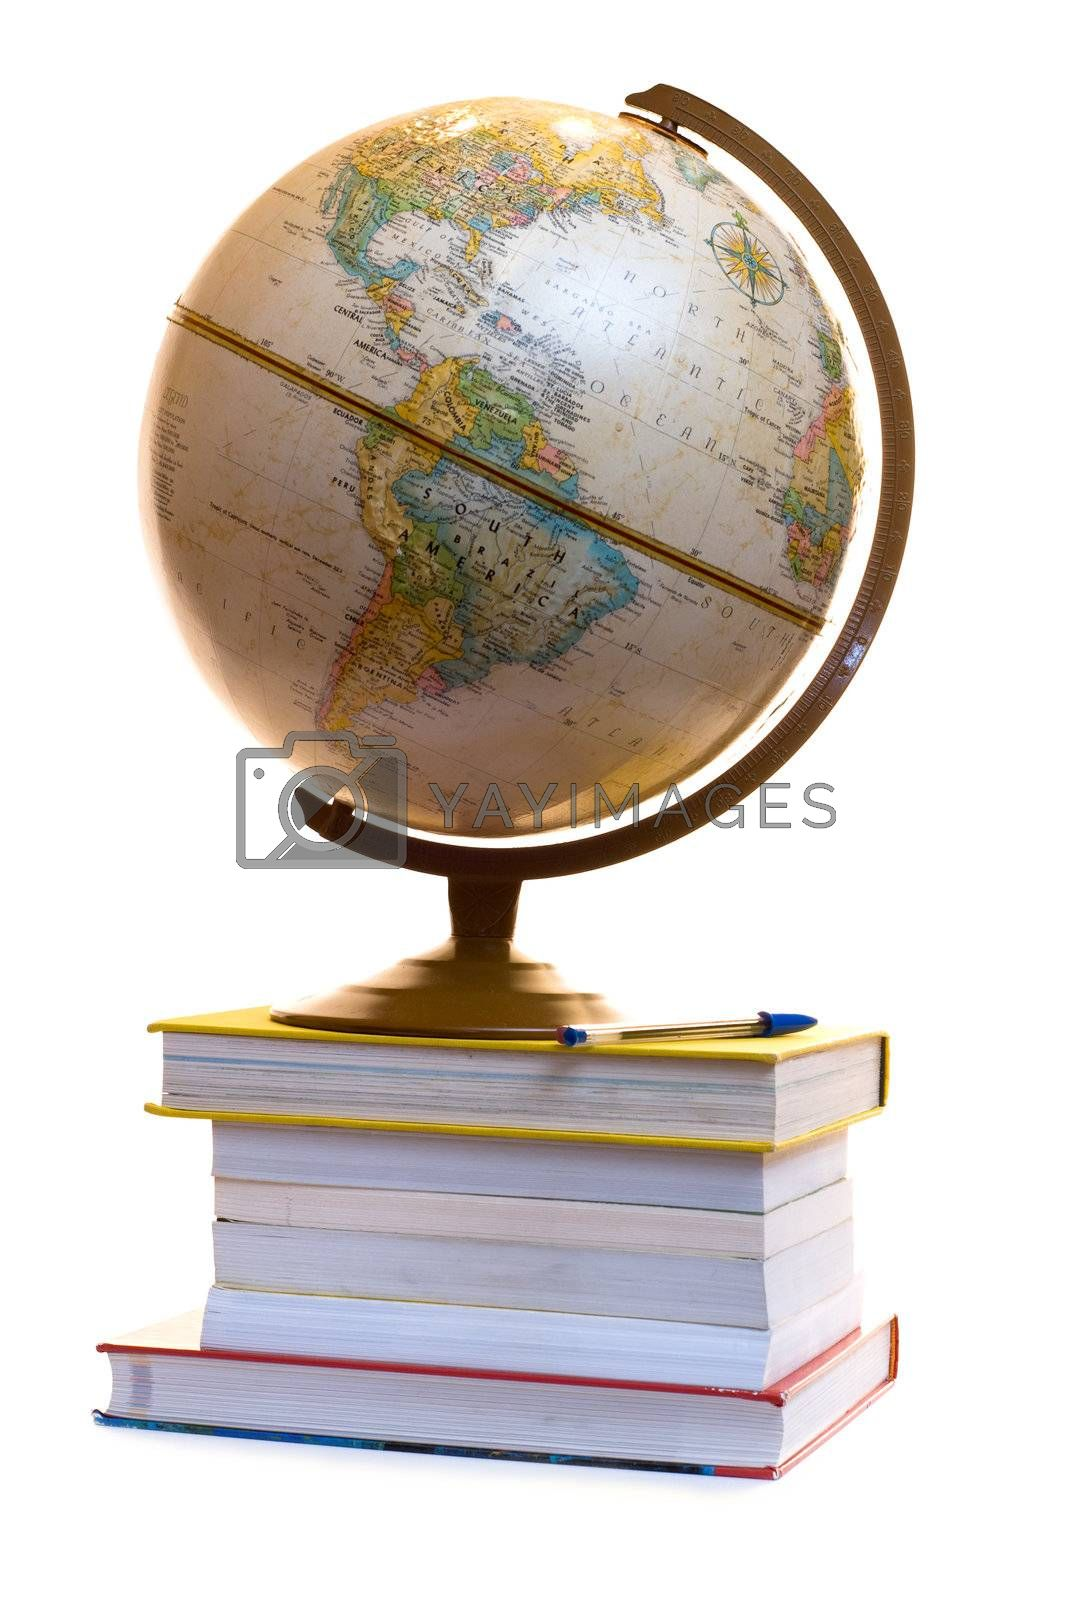 A model of the blobe sitting on a pile of text books, isolated on a white background